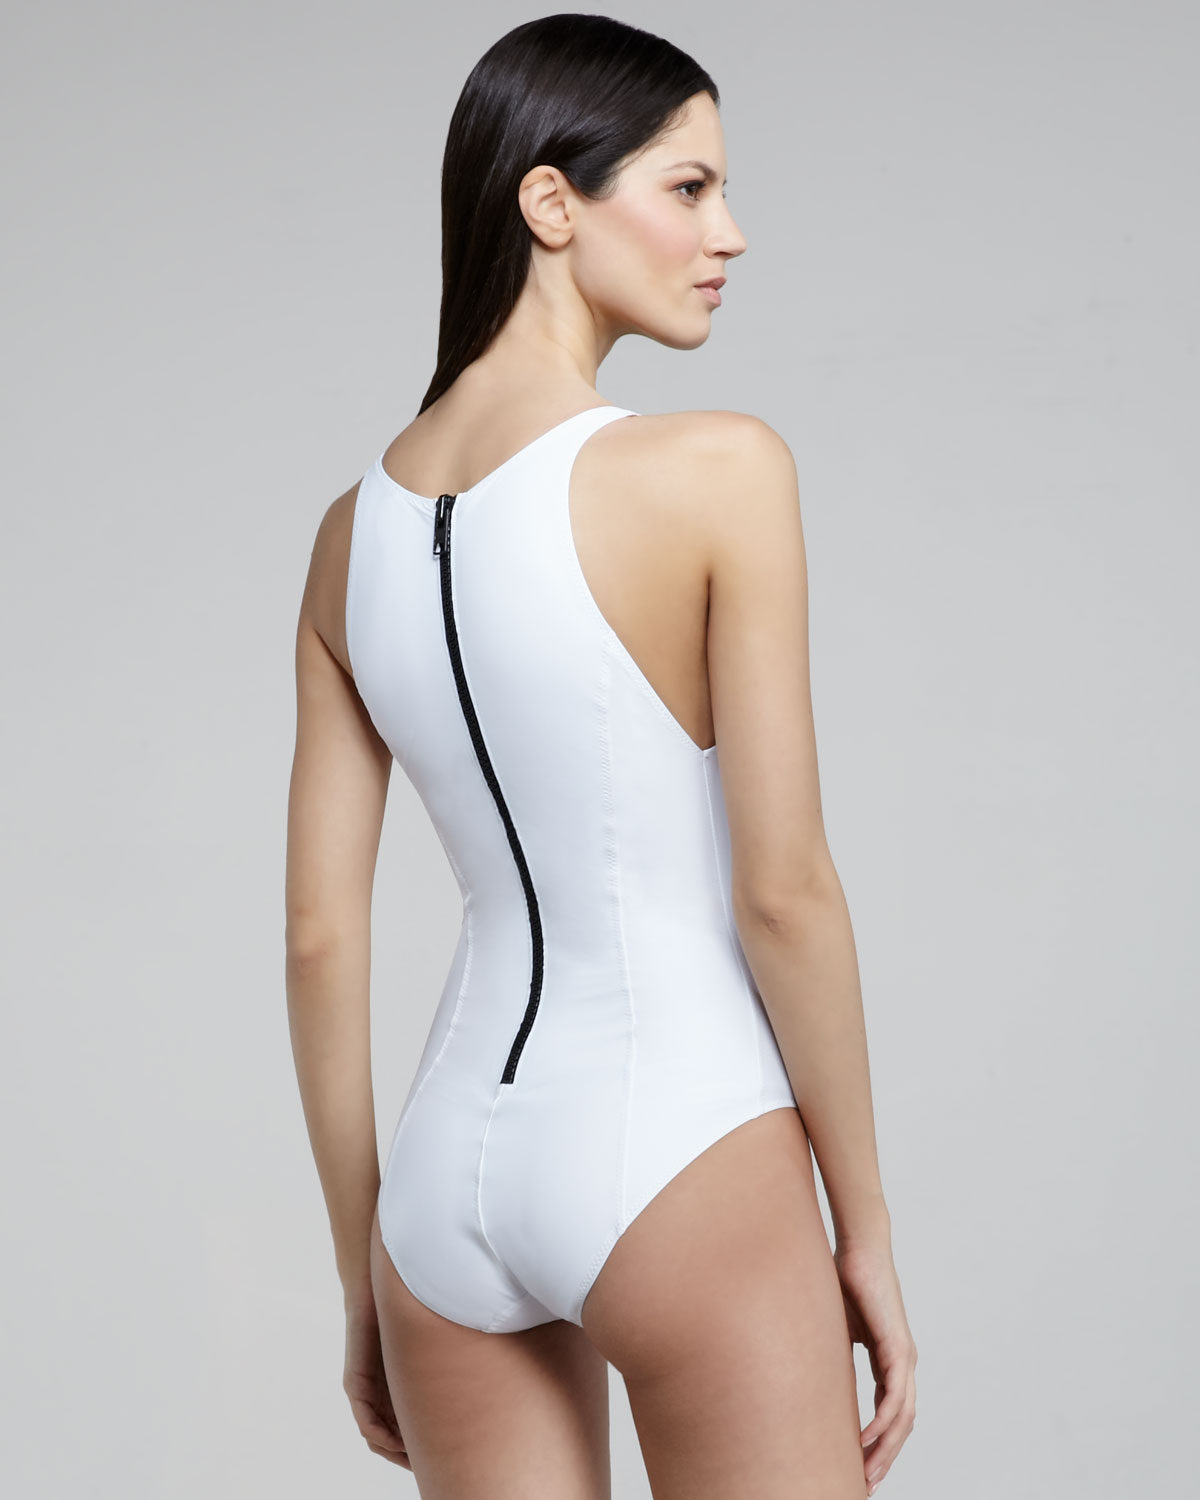 wide selection of designs hot-selling professional release date: Lisa Marie Fernandez White Garance Back-zip One-piece Swimsuit